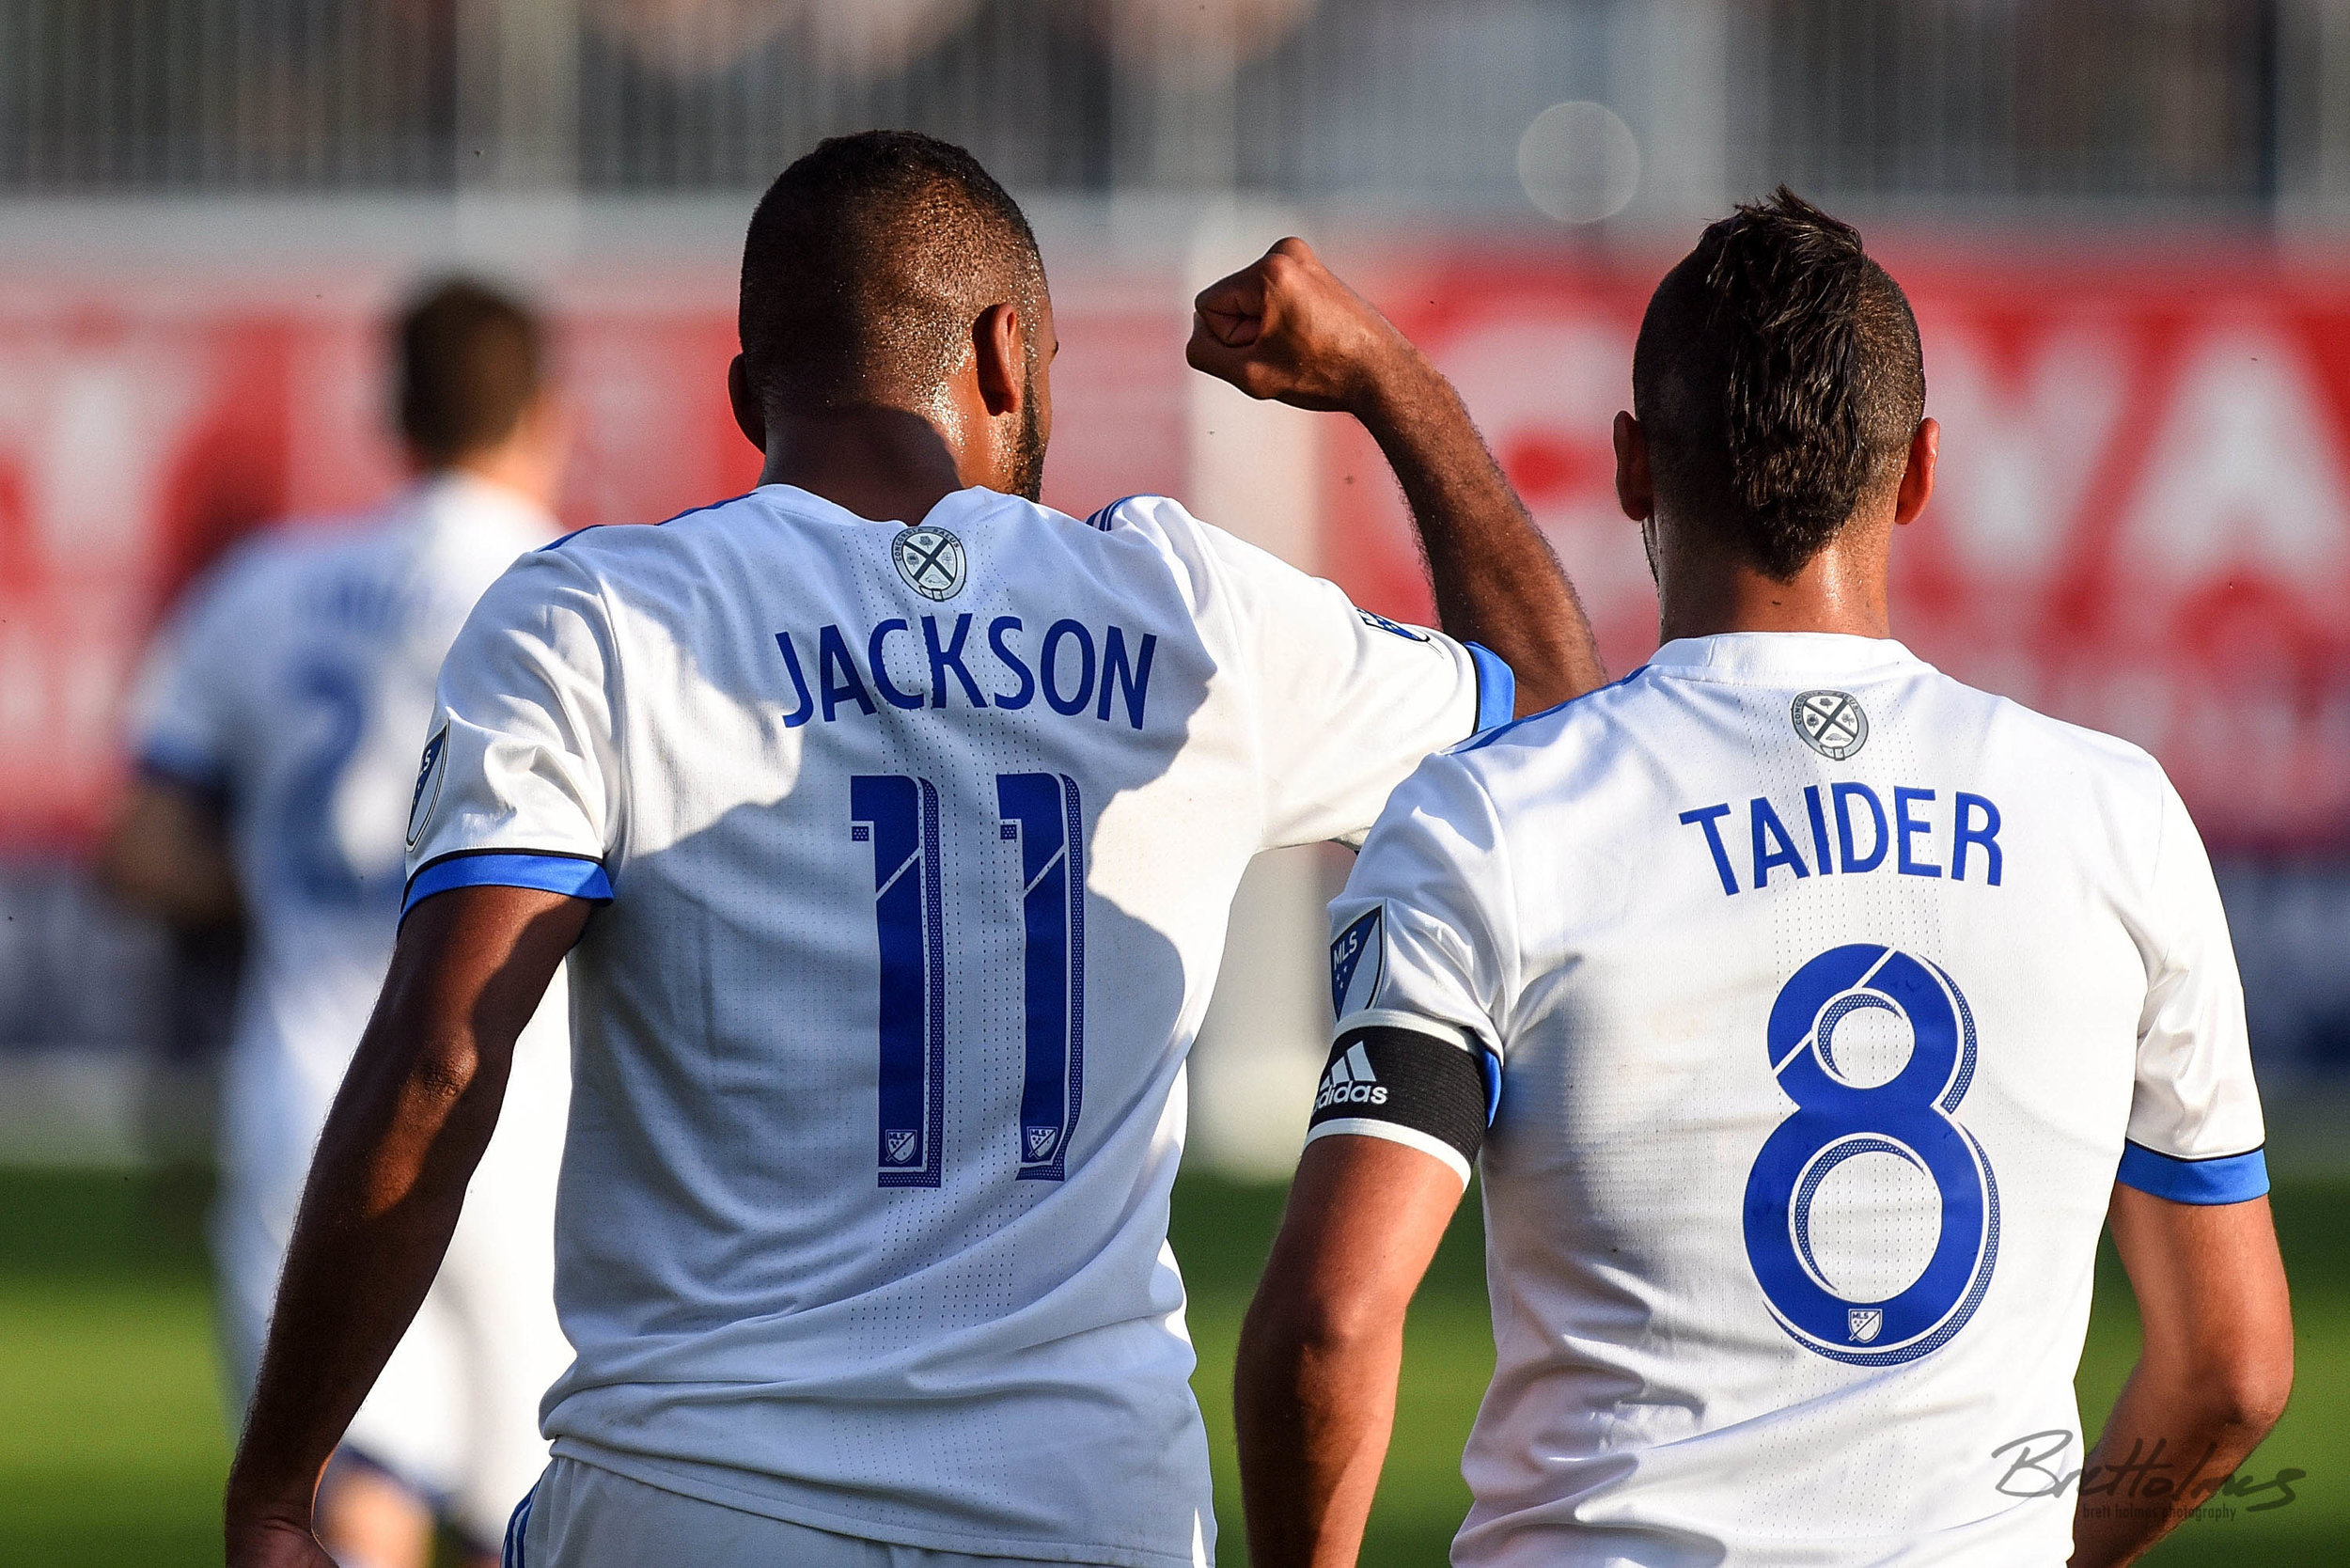 CALGARY, AB - AUGUST 14: Montreal Impact forward Anthony Jackson-Hamel (11) pumps his fist after scoring a goal during the first half of the second leg of a Canadian Championship semifinal match between the Montreal Impact and Cavalry FC on August 14, 2019, at ATCO Field at Spruce Meadows in Calgary, AB. (Photo by Brett Holmes/Icon Sportswire)